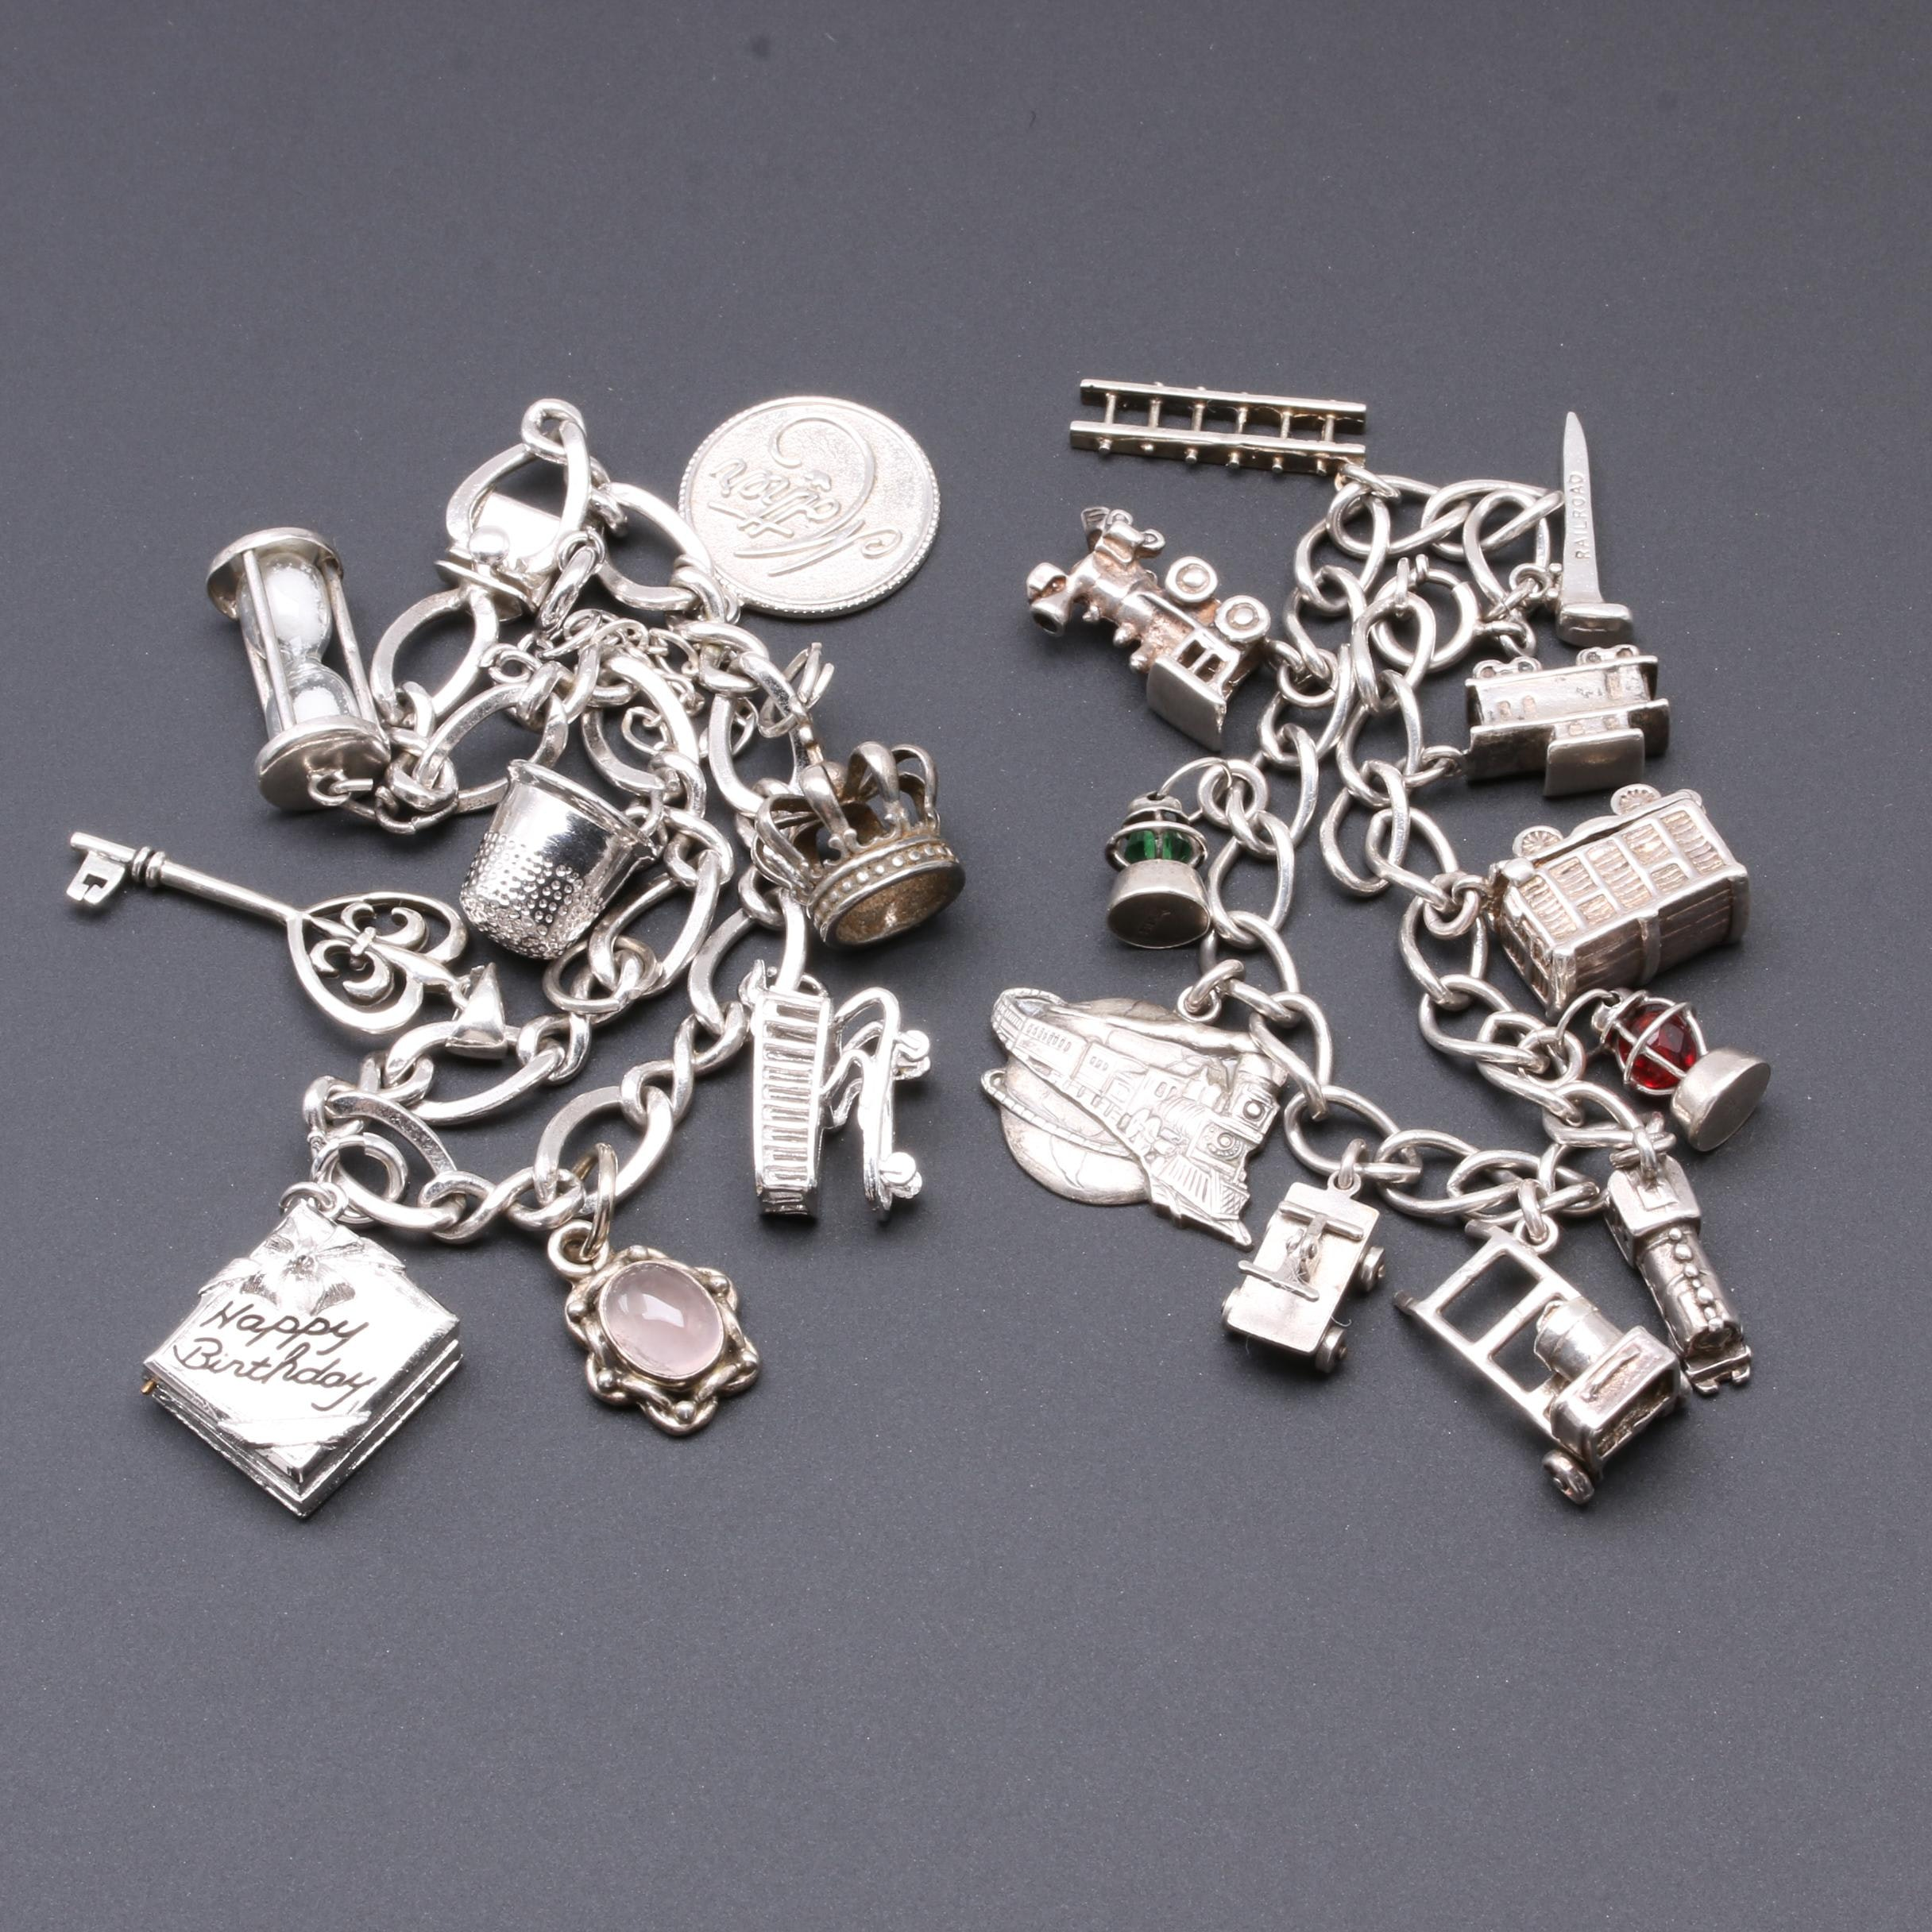 Vintage Sterling Silver Railroad and Mother Themed Charm Bracelets